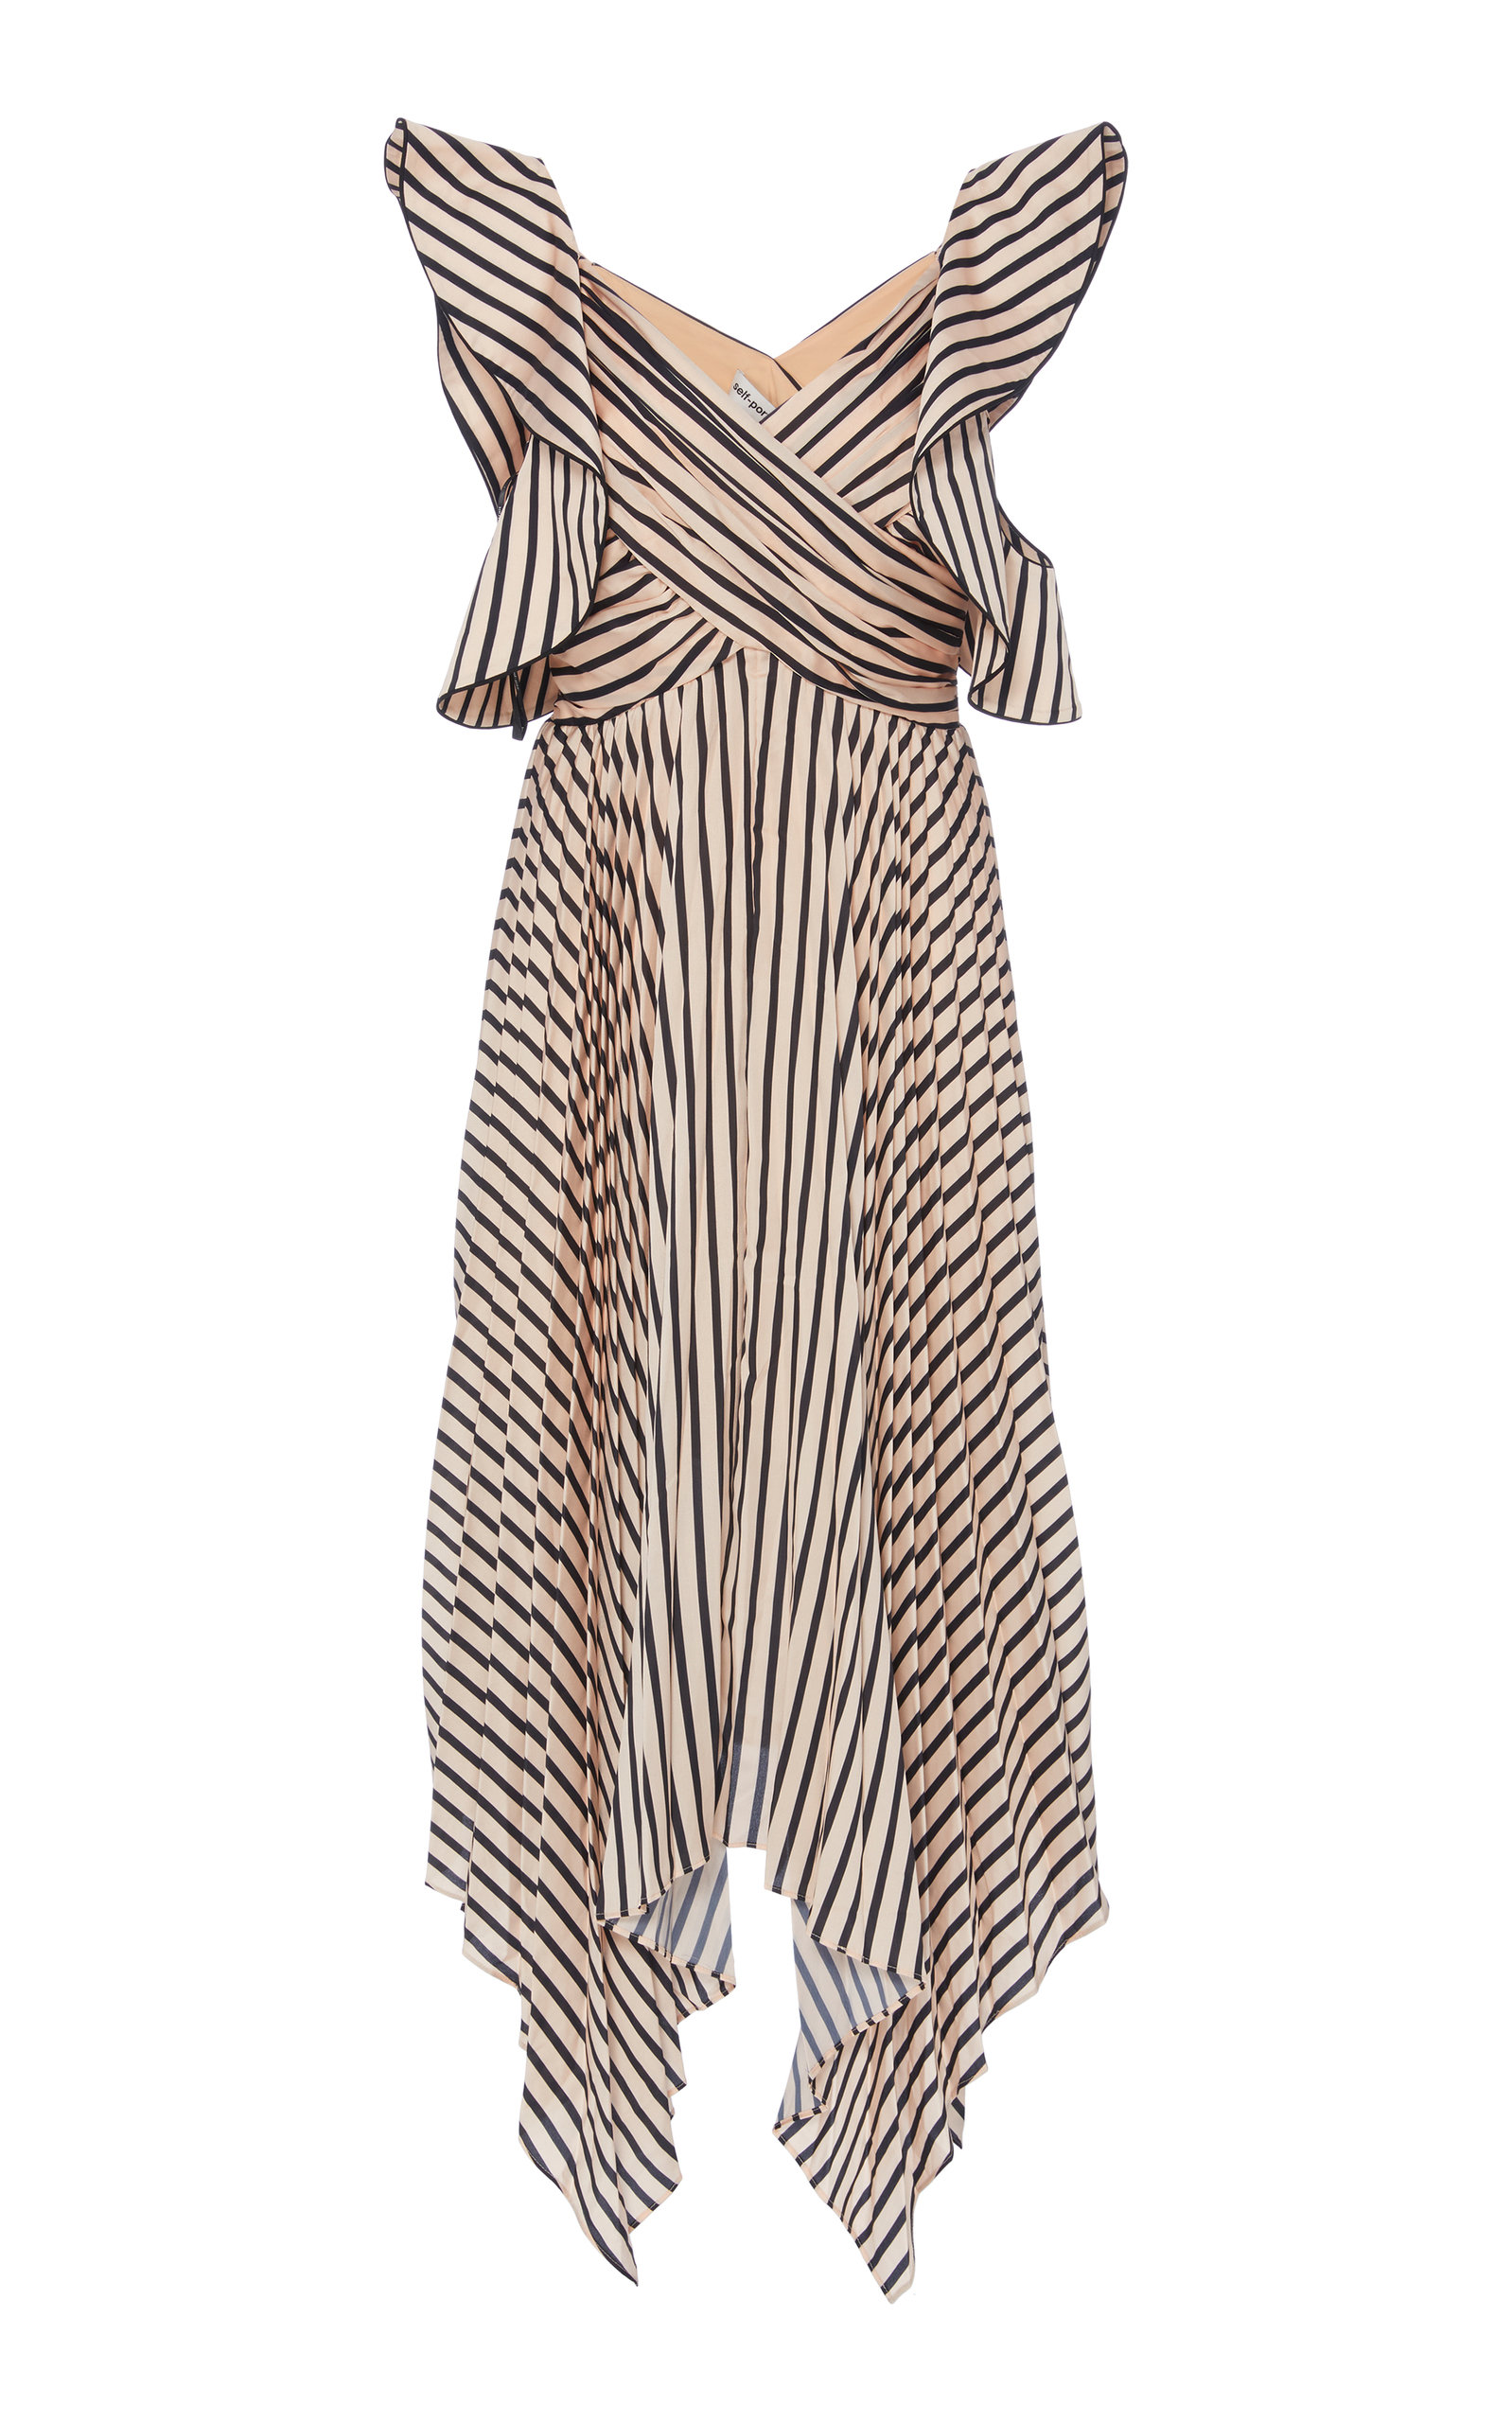 Asymmetric Stripe Midi Dress Self Portrait Genuine For Sale Clearance Official Cheap Price In China Recommend Cheap For Sale kCD3twMcO6